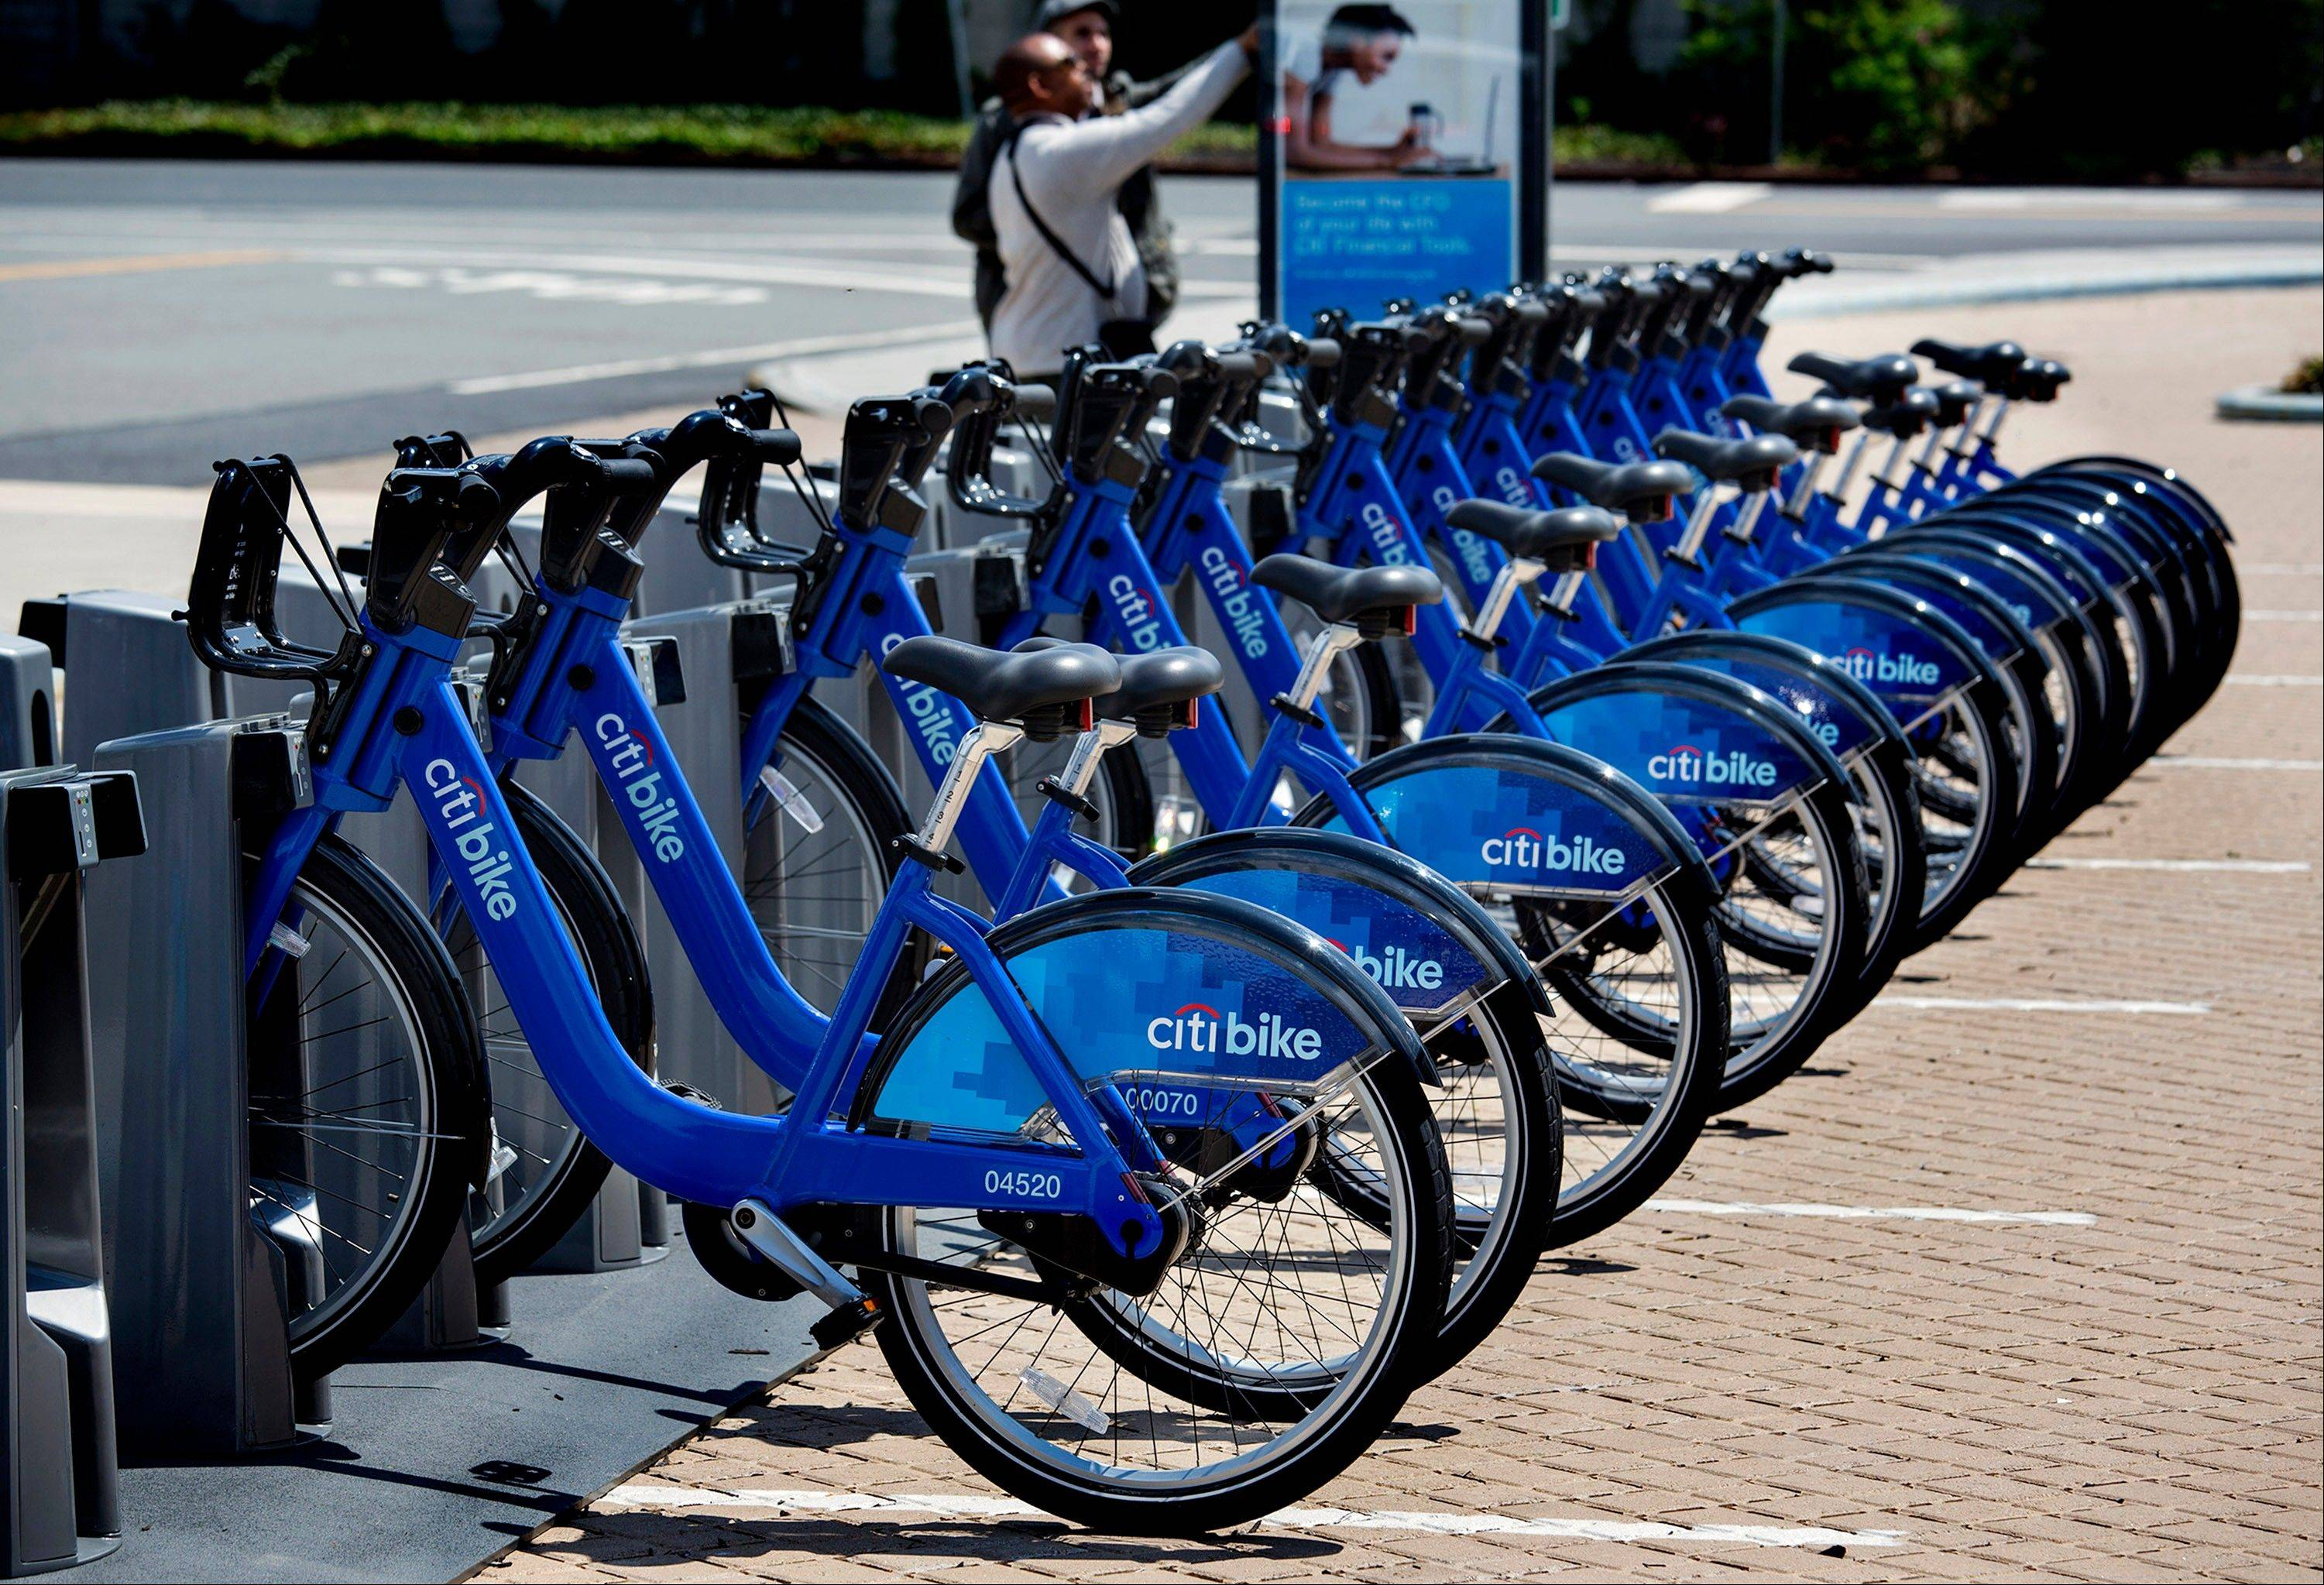 Chicago's bike-sharing program will remain open for business during the winter months. Mayor Rahm Emanuel announced Tuesday the blue Divvy bikes will be available at 300 stations, though the fleet will be reduced because the city expects fewer riders.